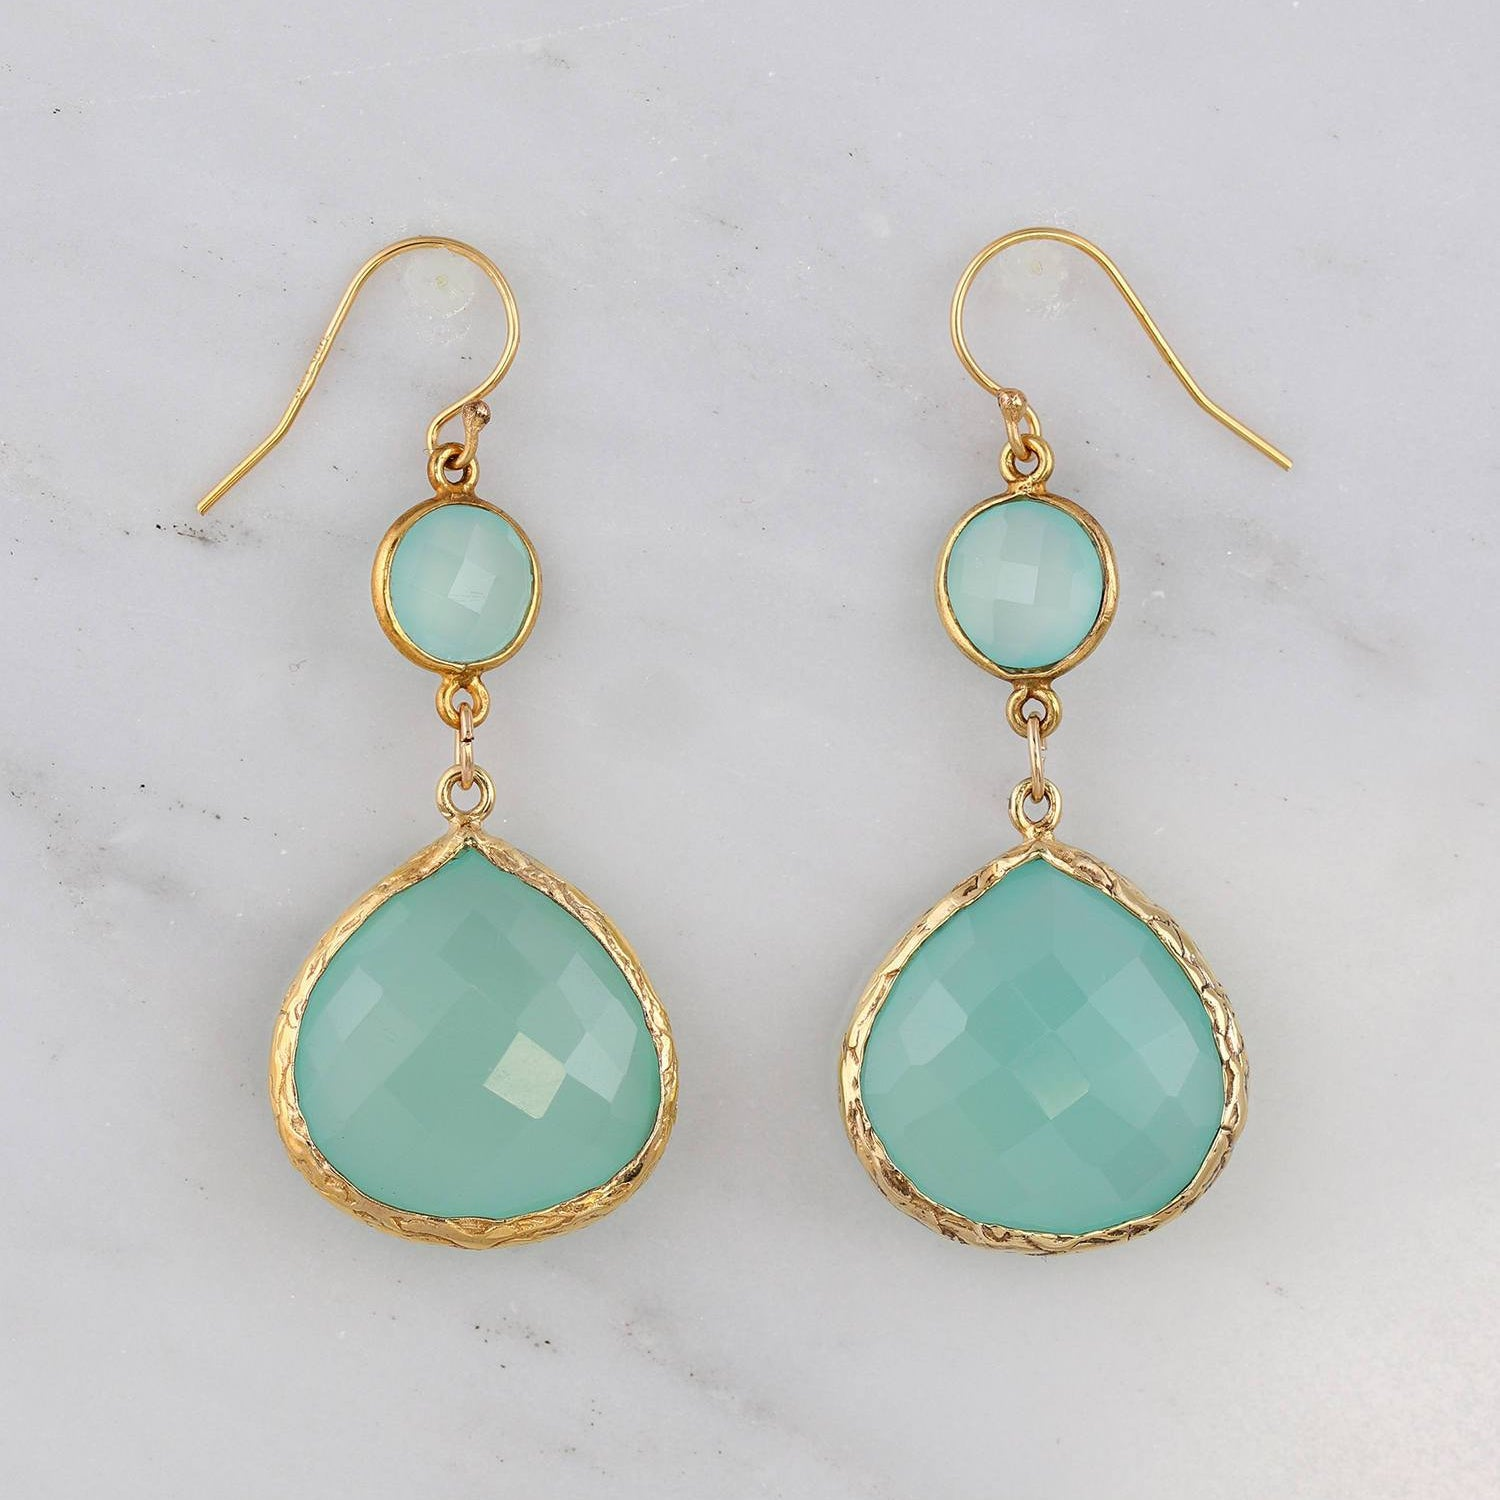 Aqua Chalcedony Earrings, Double drop Earring, Sea Blue Earrings, Gold filled Wire Earrings, Modern Look Earrings, Textured Framed Earrings